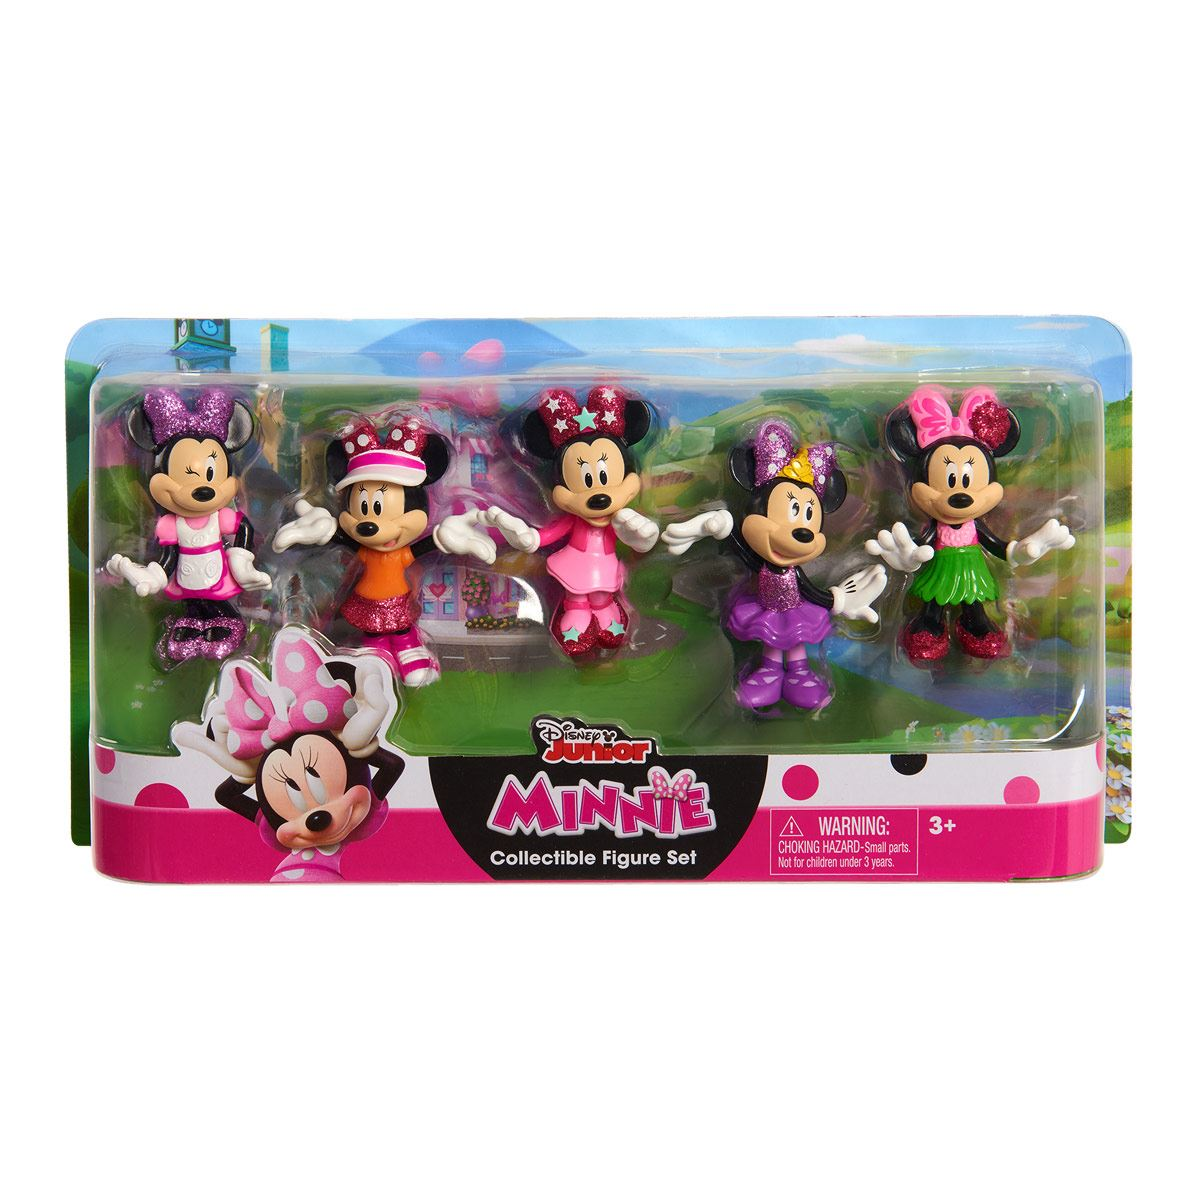 Minnie Collectible Figure Pack